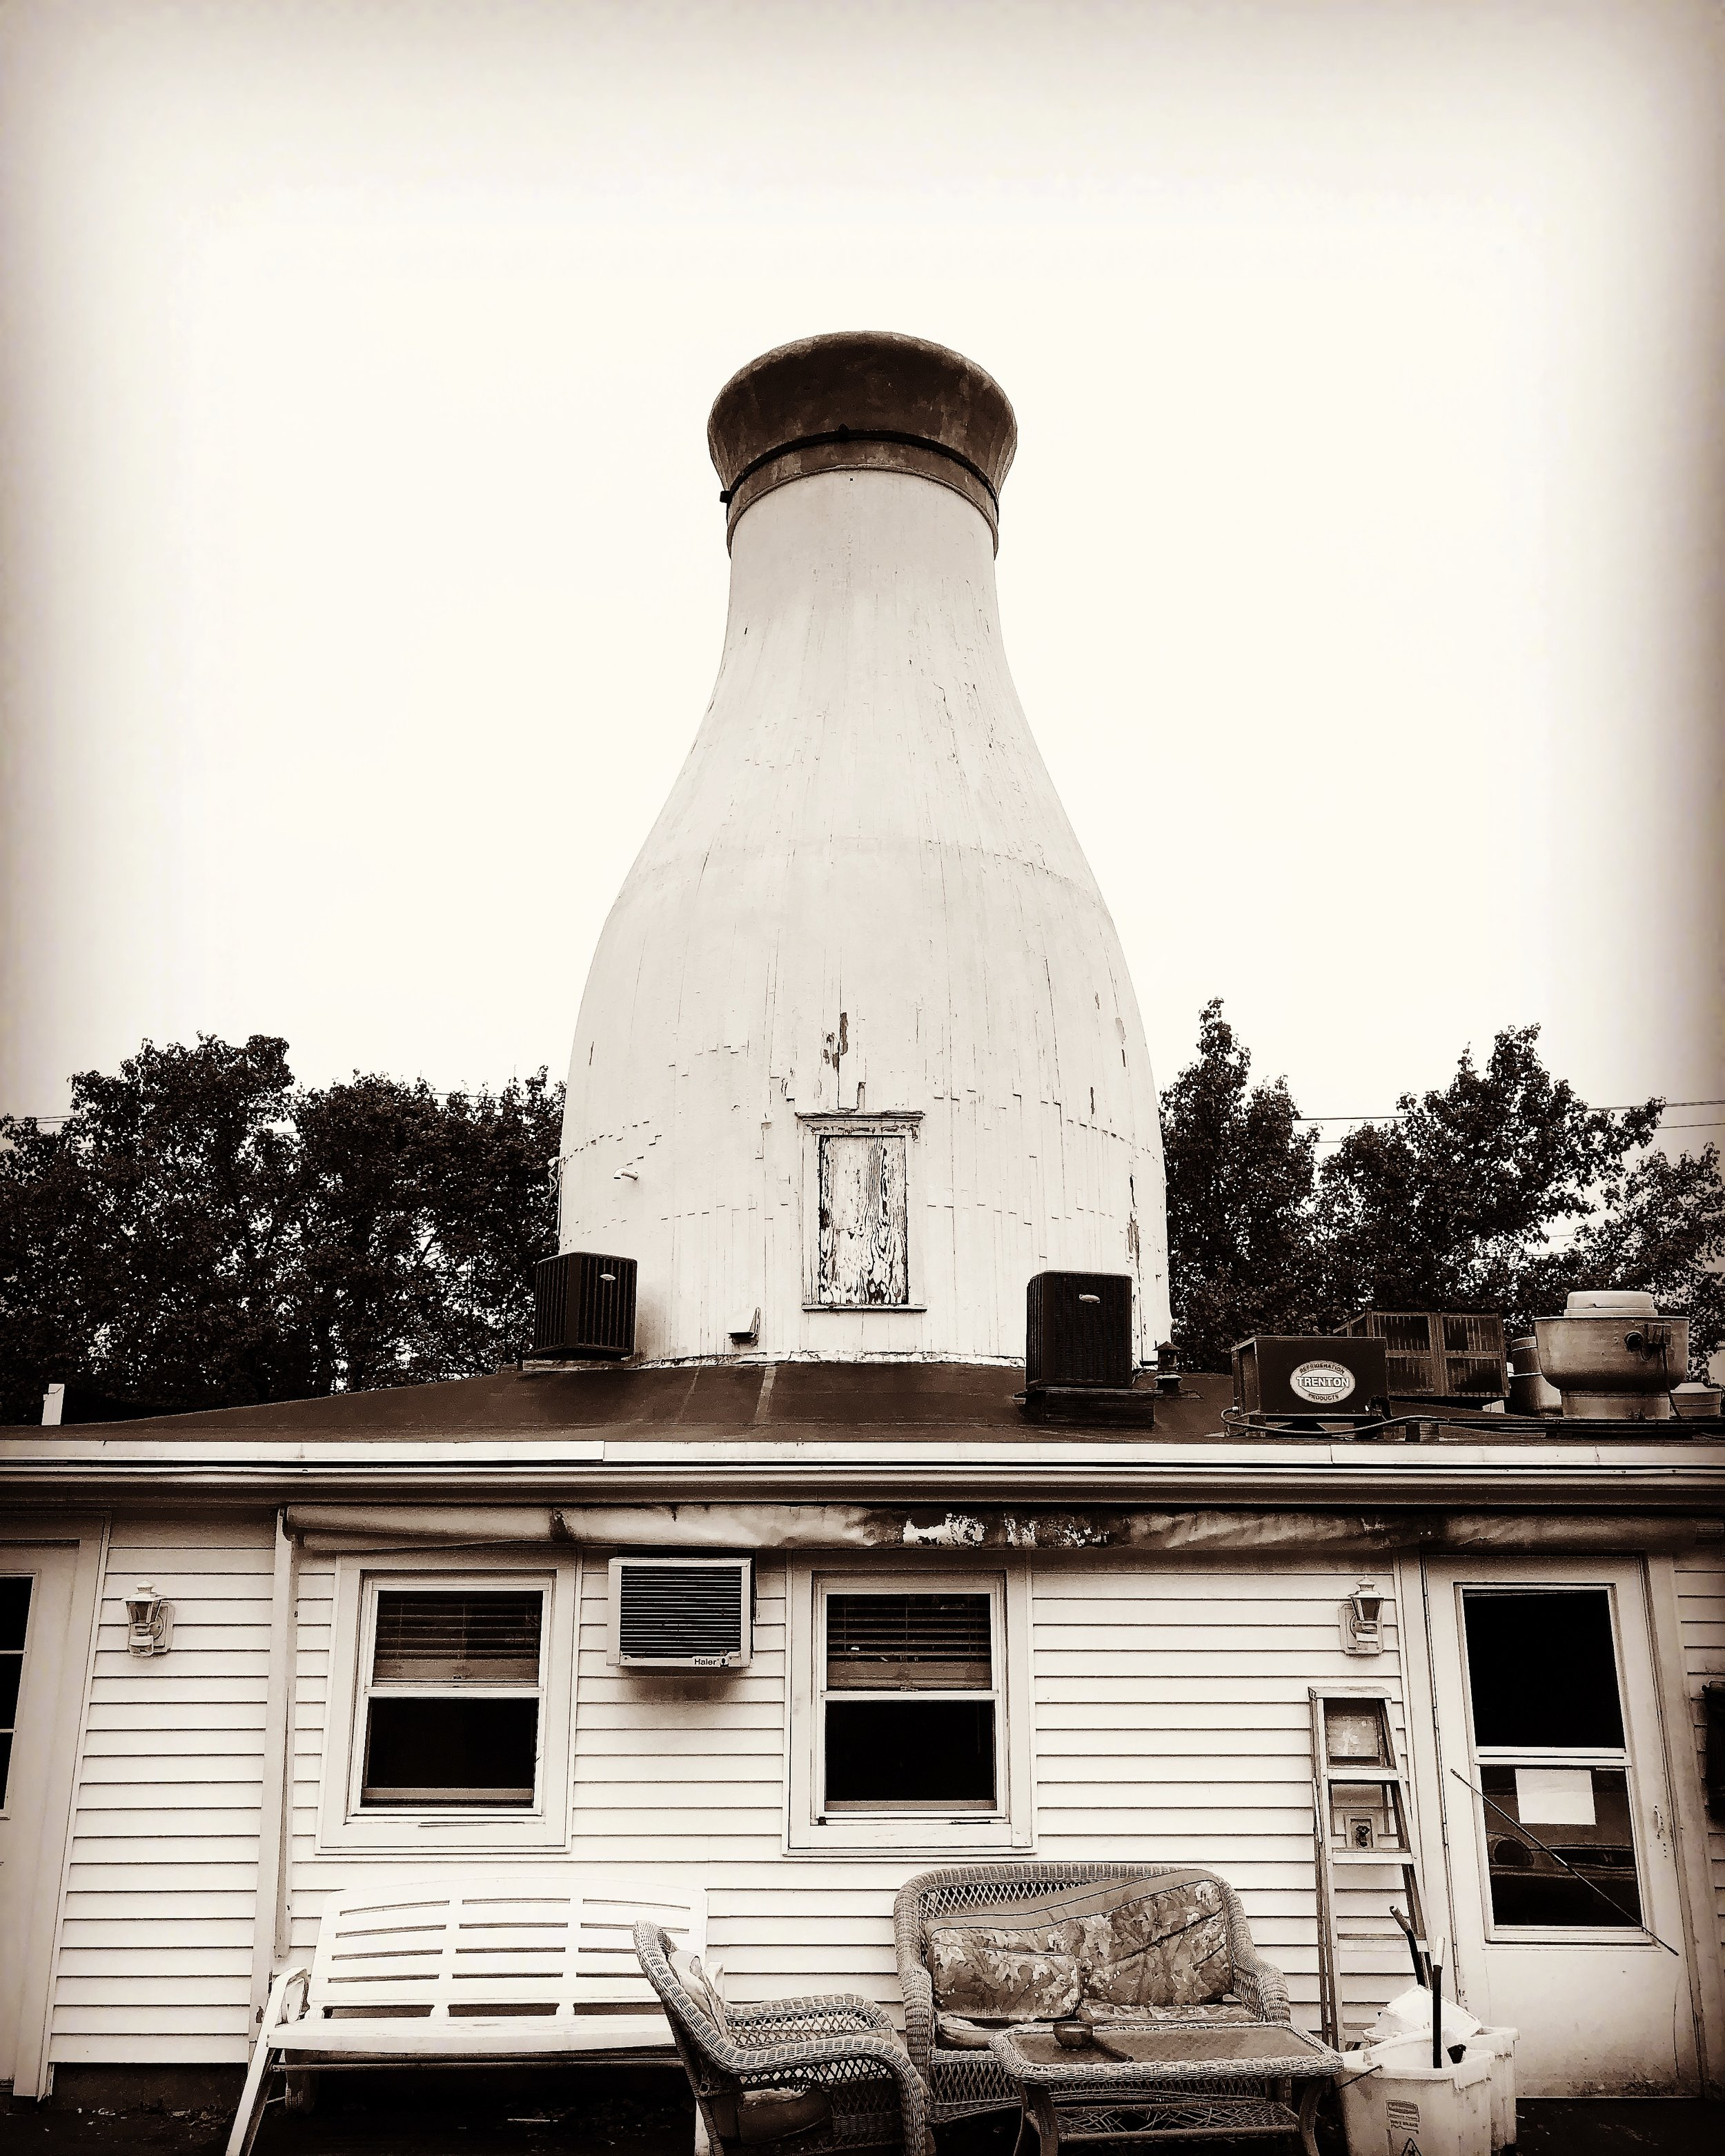 THE MILK BOTTLE, ROUTE 138, MA